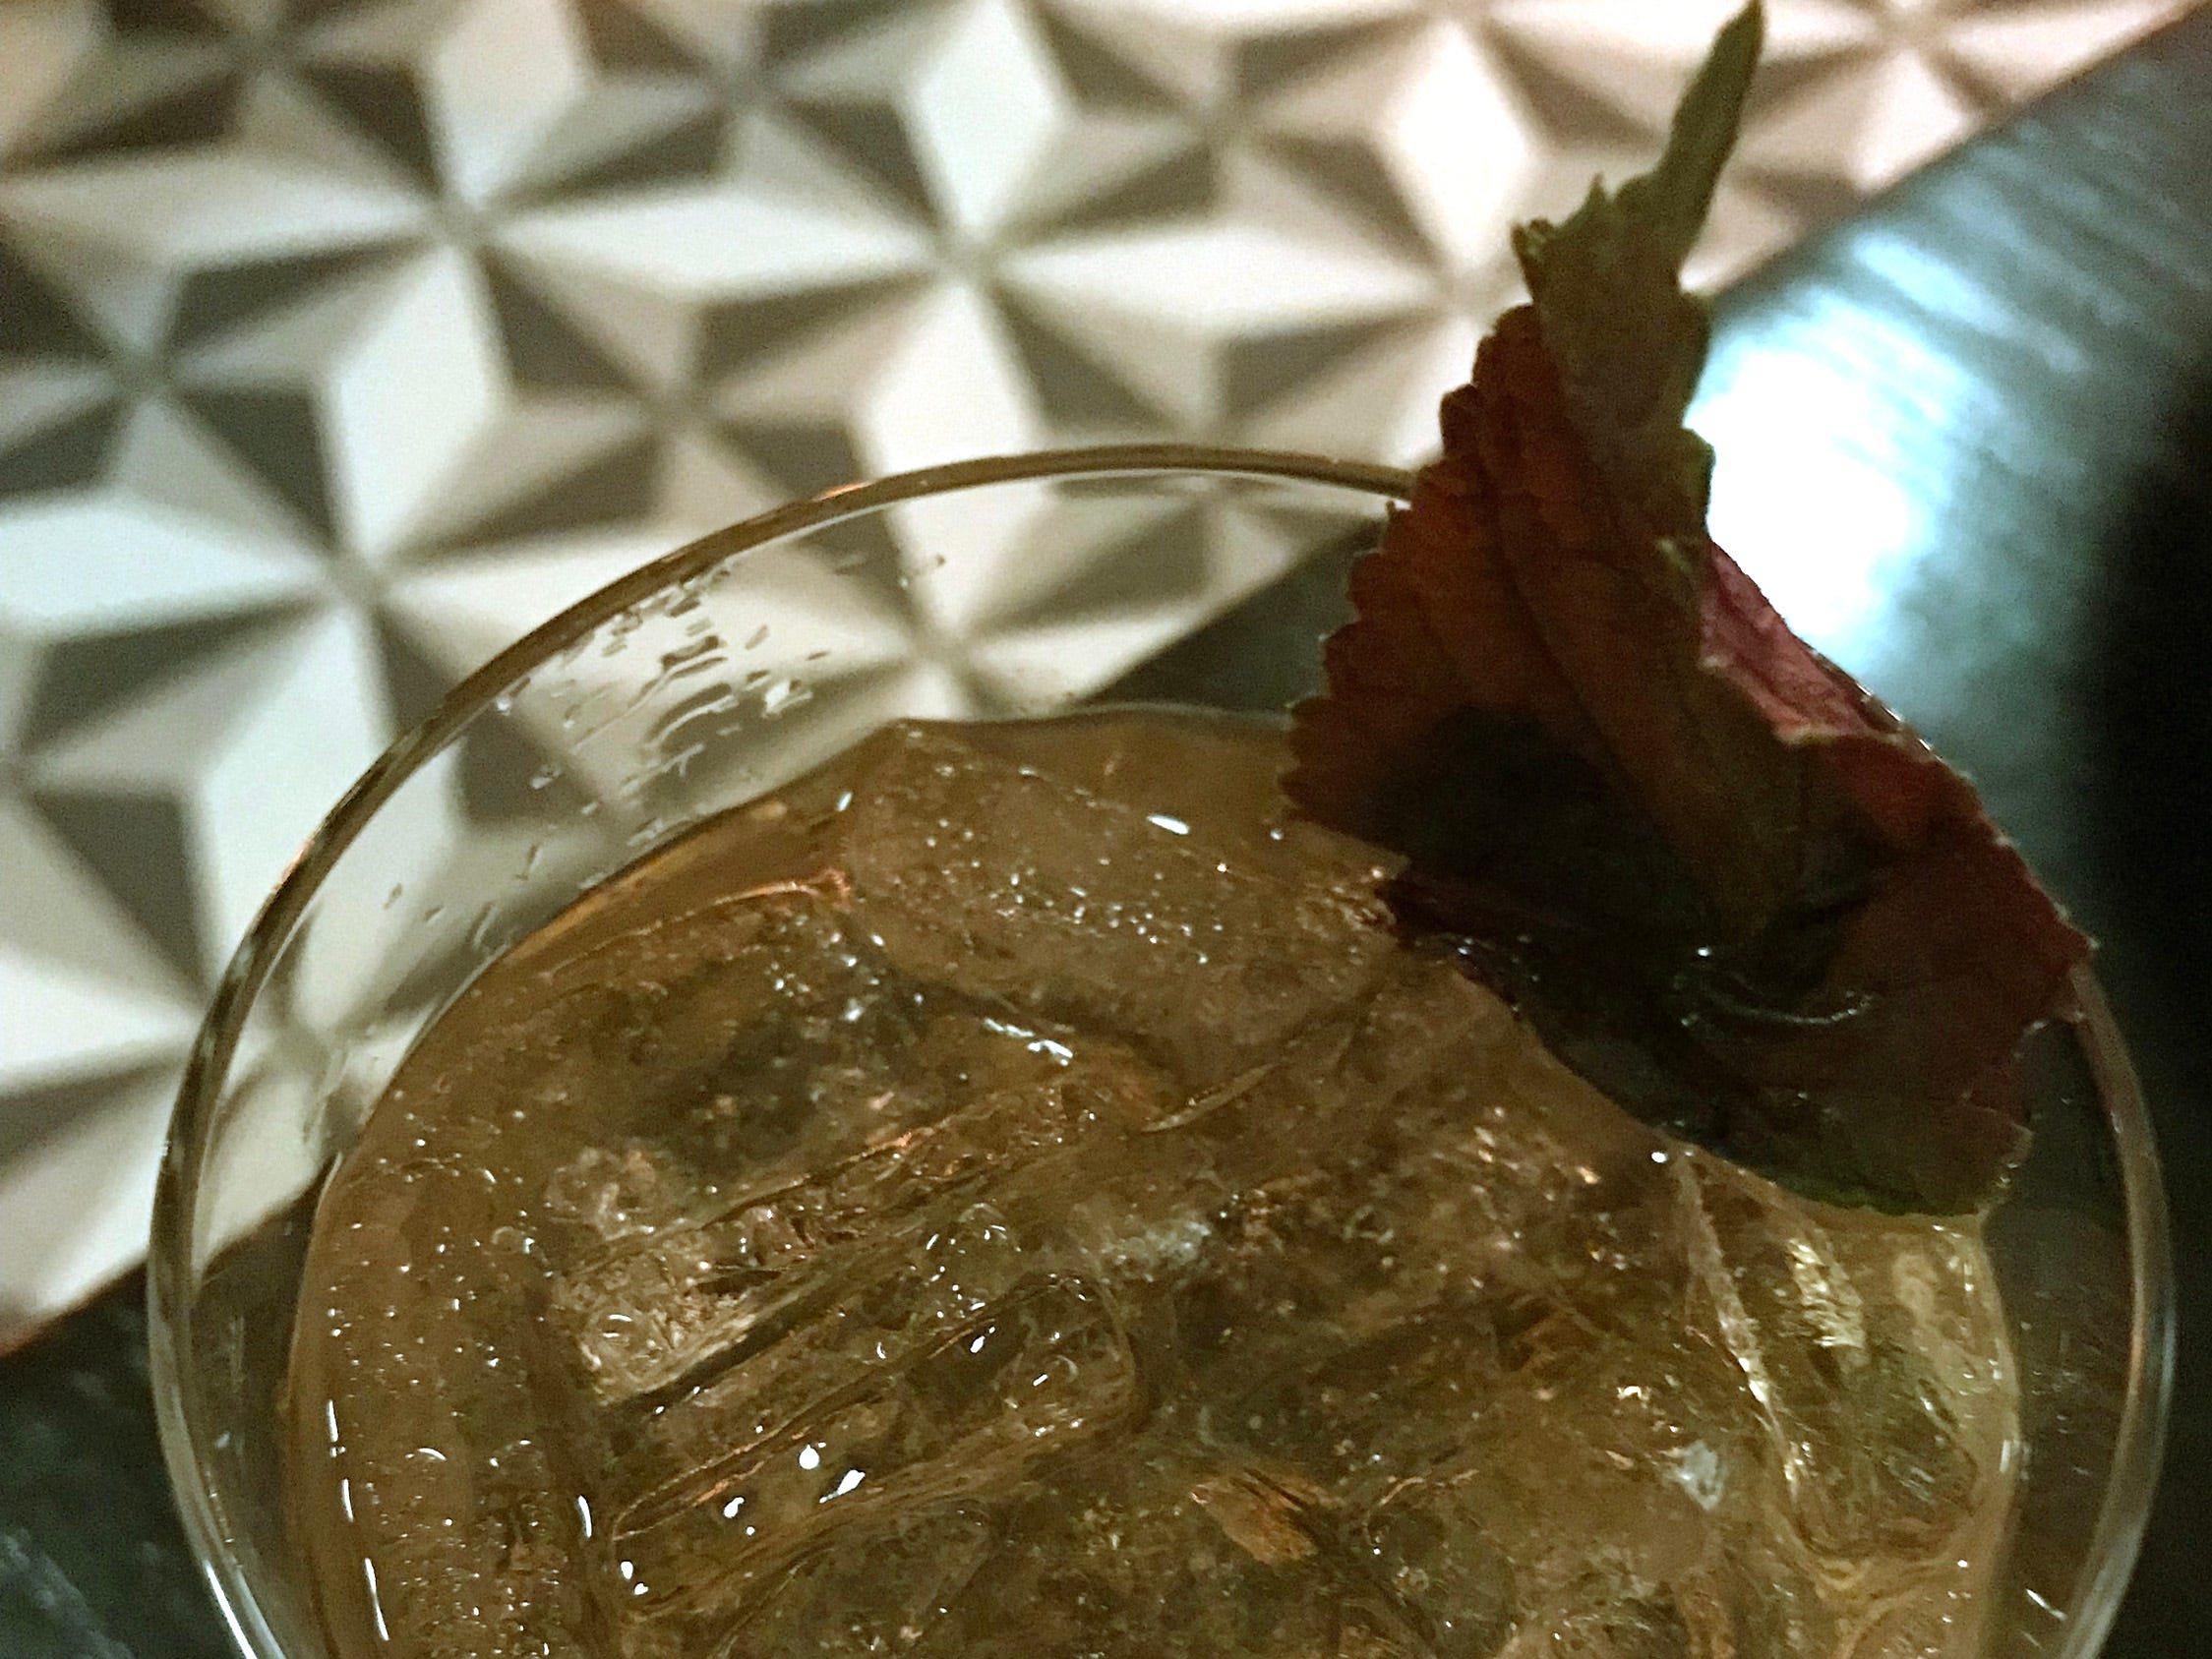 The Wind Rises, a spring cocktail at Strange Town, 2101 N. Prospect Ave., is an elaboration on a gin and tonic:  Aviation gin infused with shiso leaves, topped up with Boylan tonic ($13).